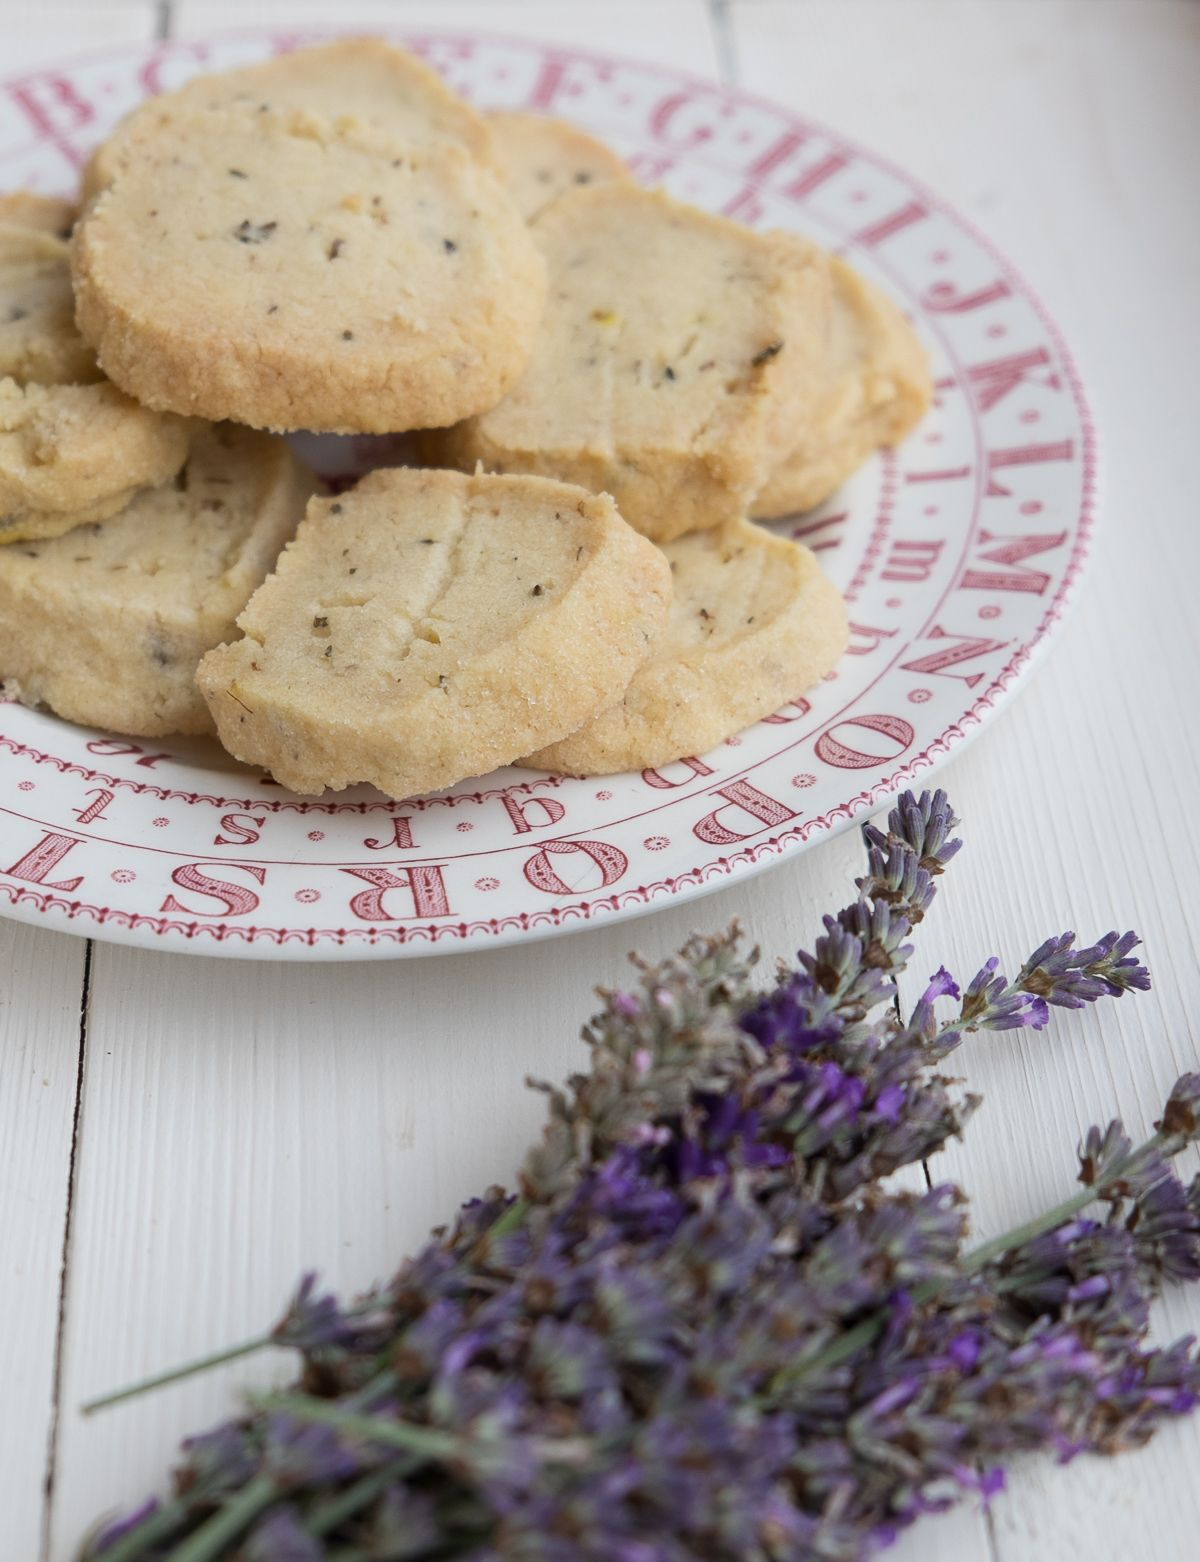 Mary berrys lavender shortbread recipe made quick easy lavender mary berrys lavender shortbread recipe made quick easy forumfinder Choice Image